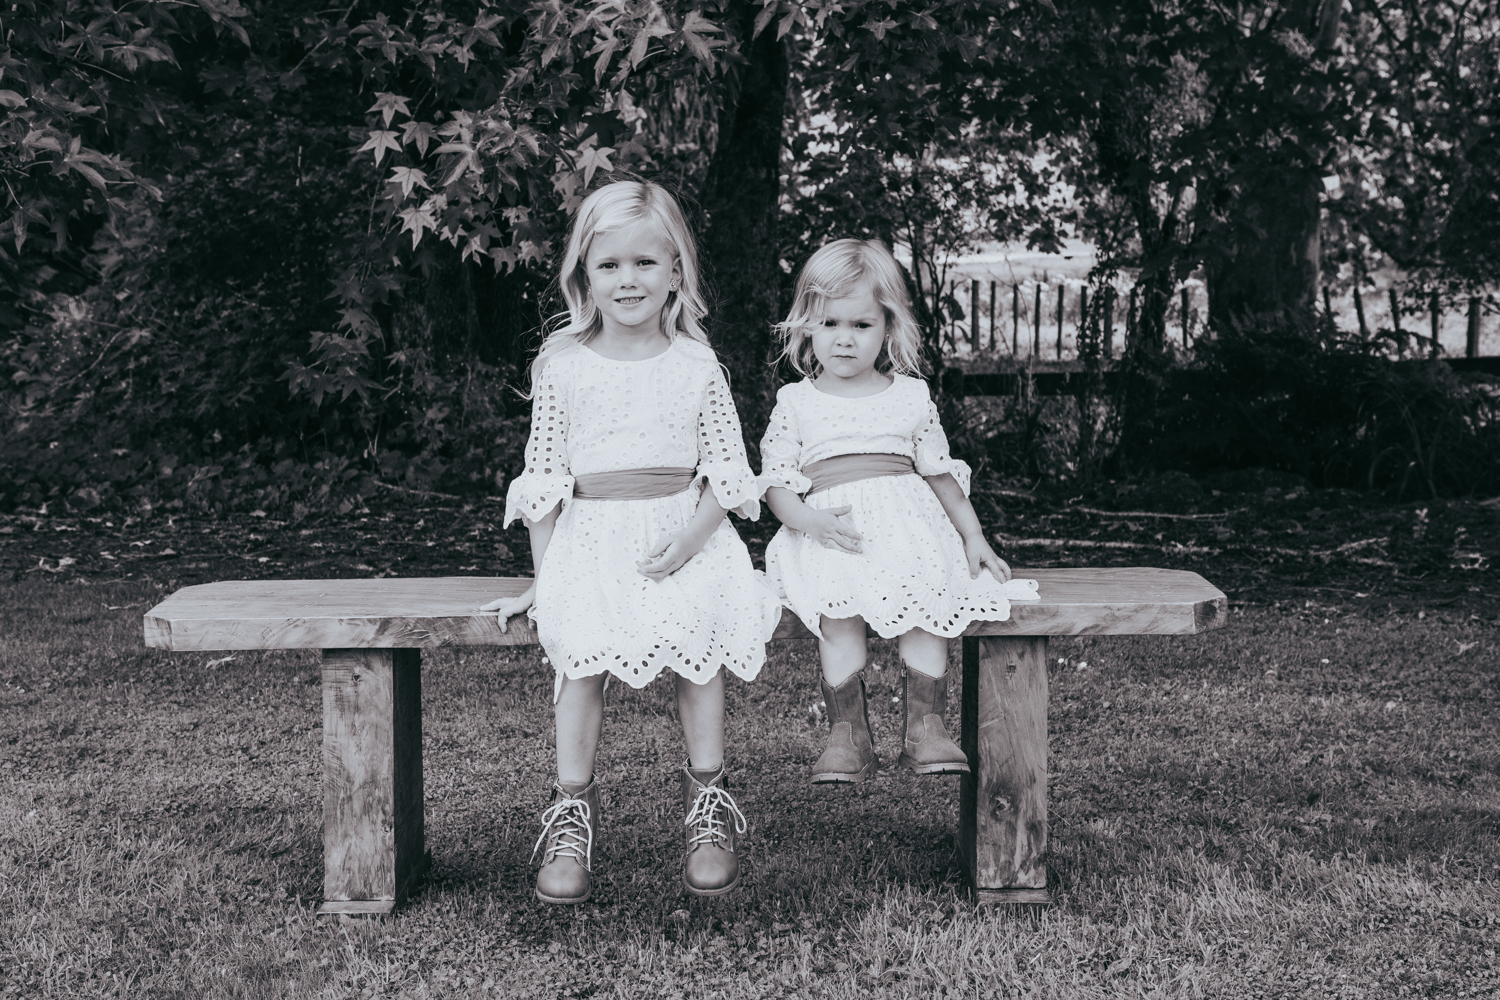 waikato-new-zealand-wedding-photographer-summer-rural-wedding-grace-loves-lace-dress-flower-girls-sitting-together.jpg